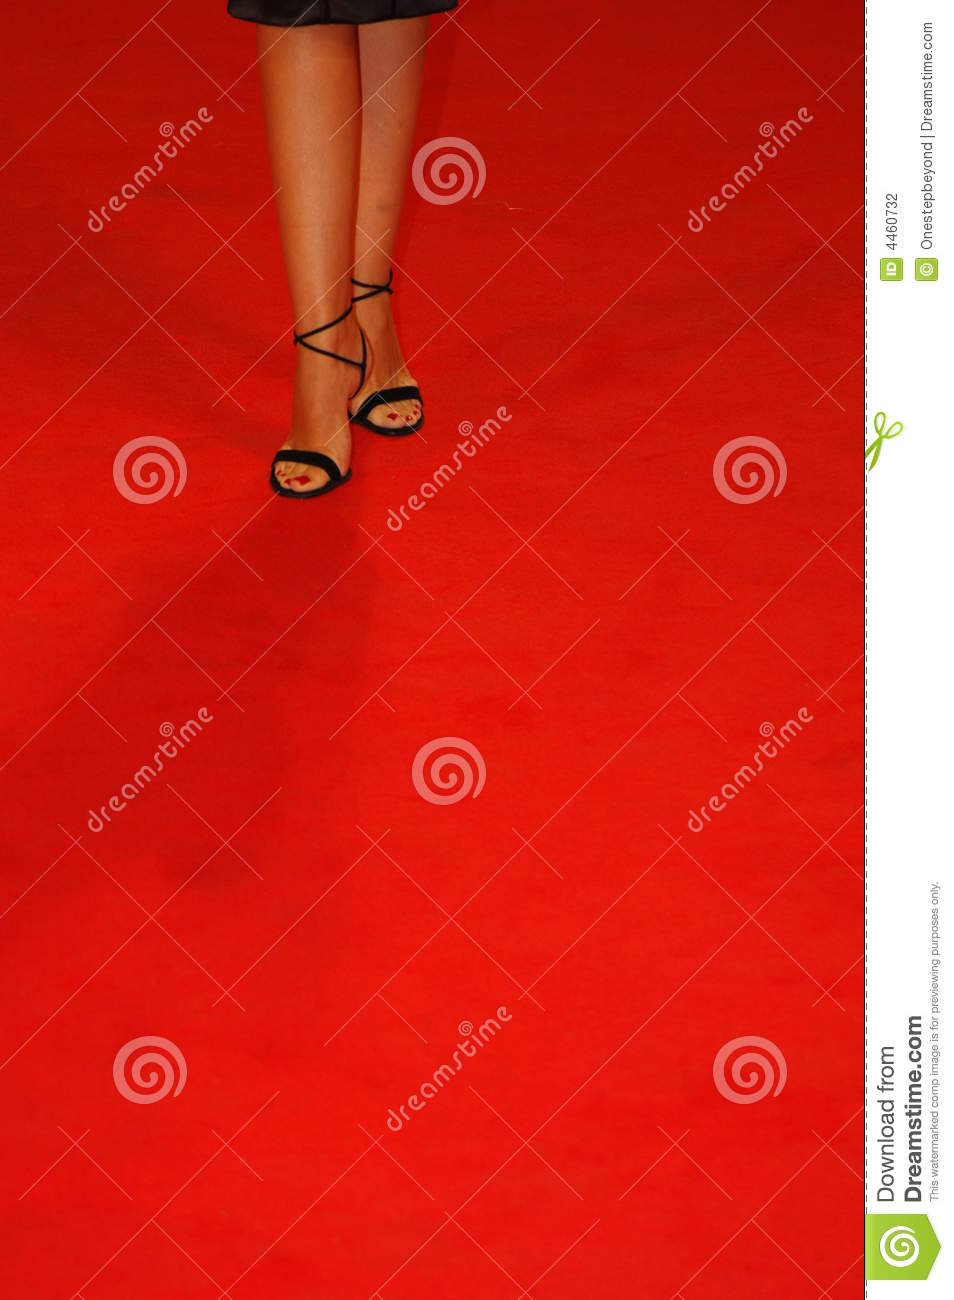 Shoes On Red Carpet Stock Photo Image Of Color Star 4460732